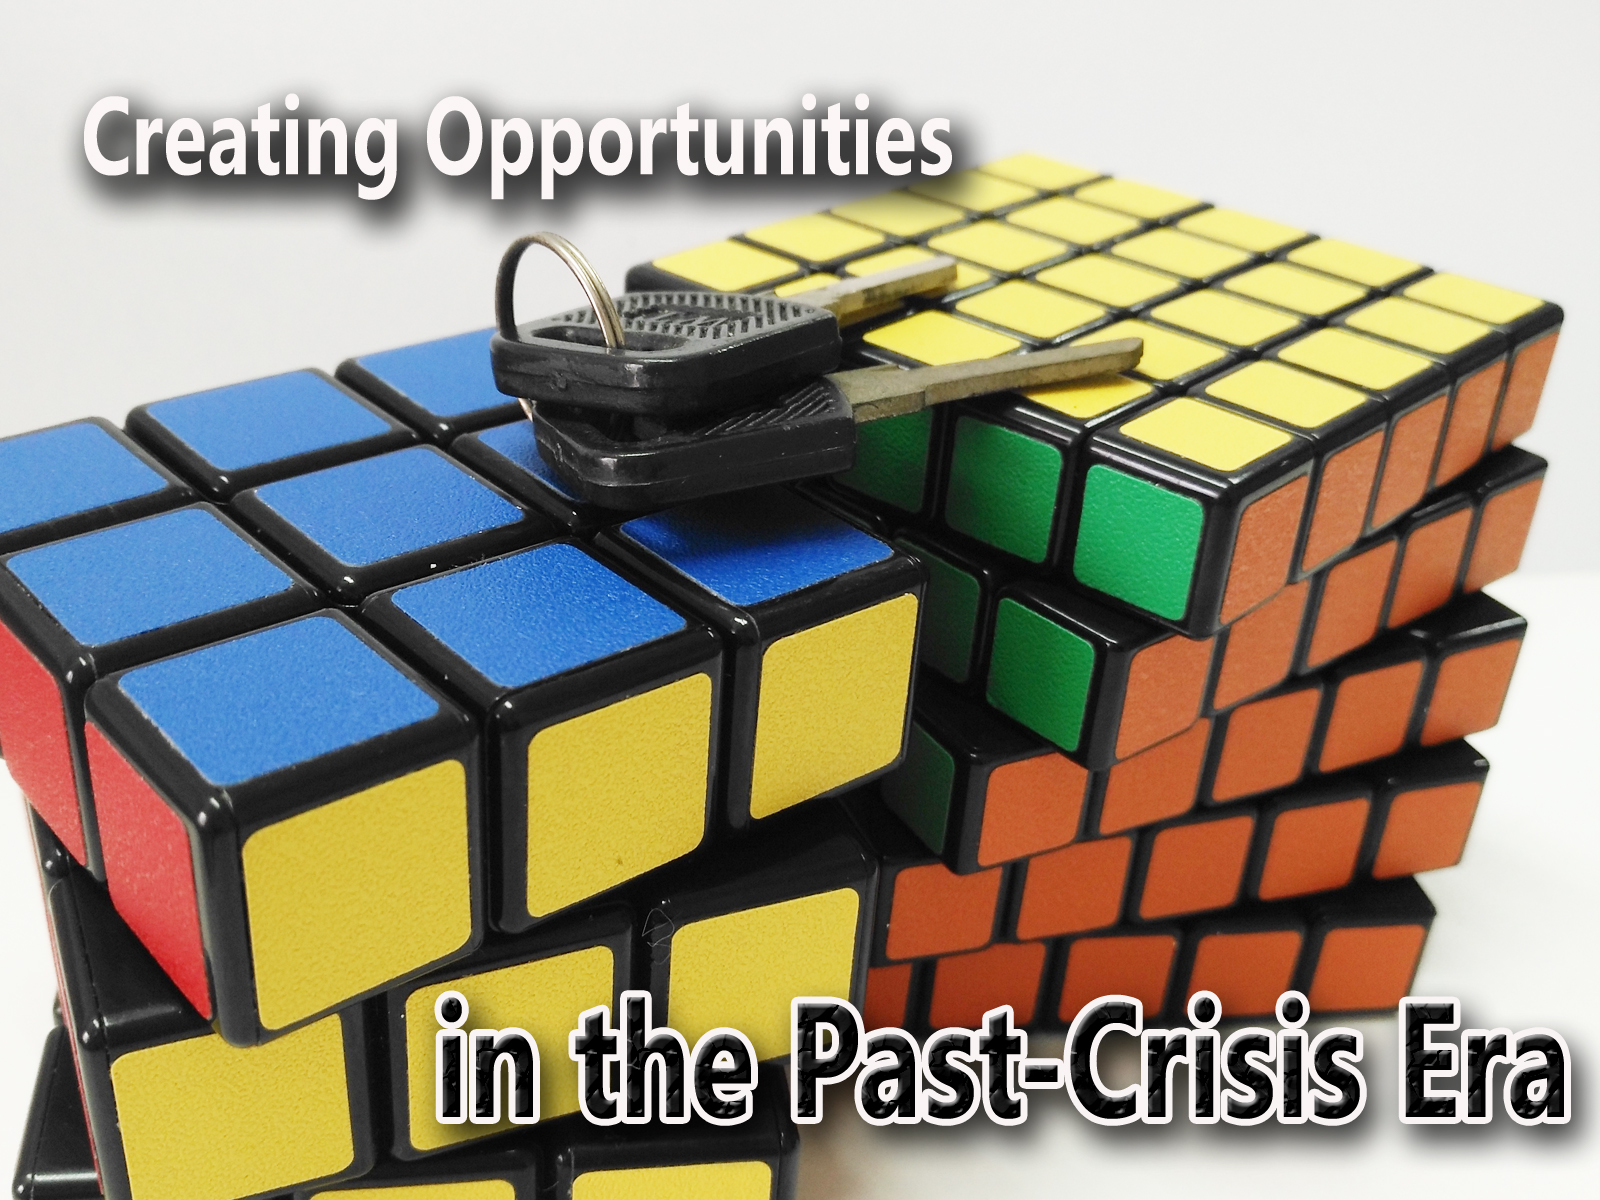 Grasping Development Opportunities in the Post-Crisis Era